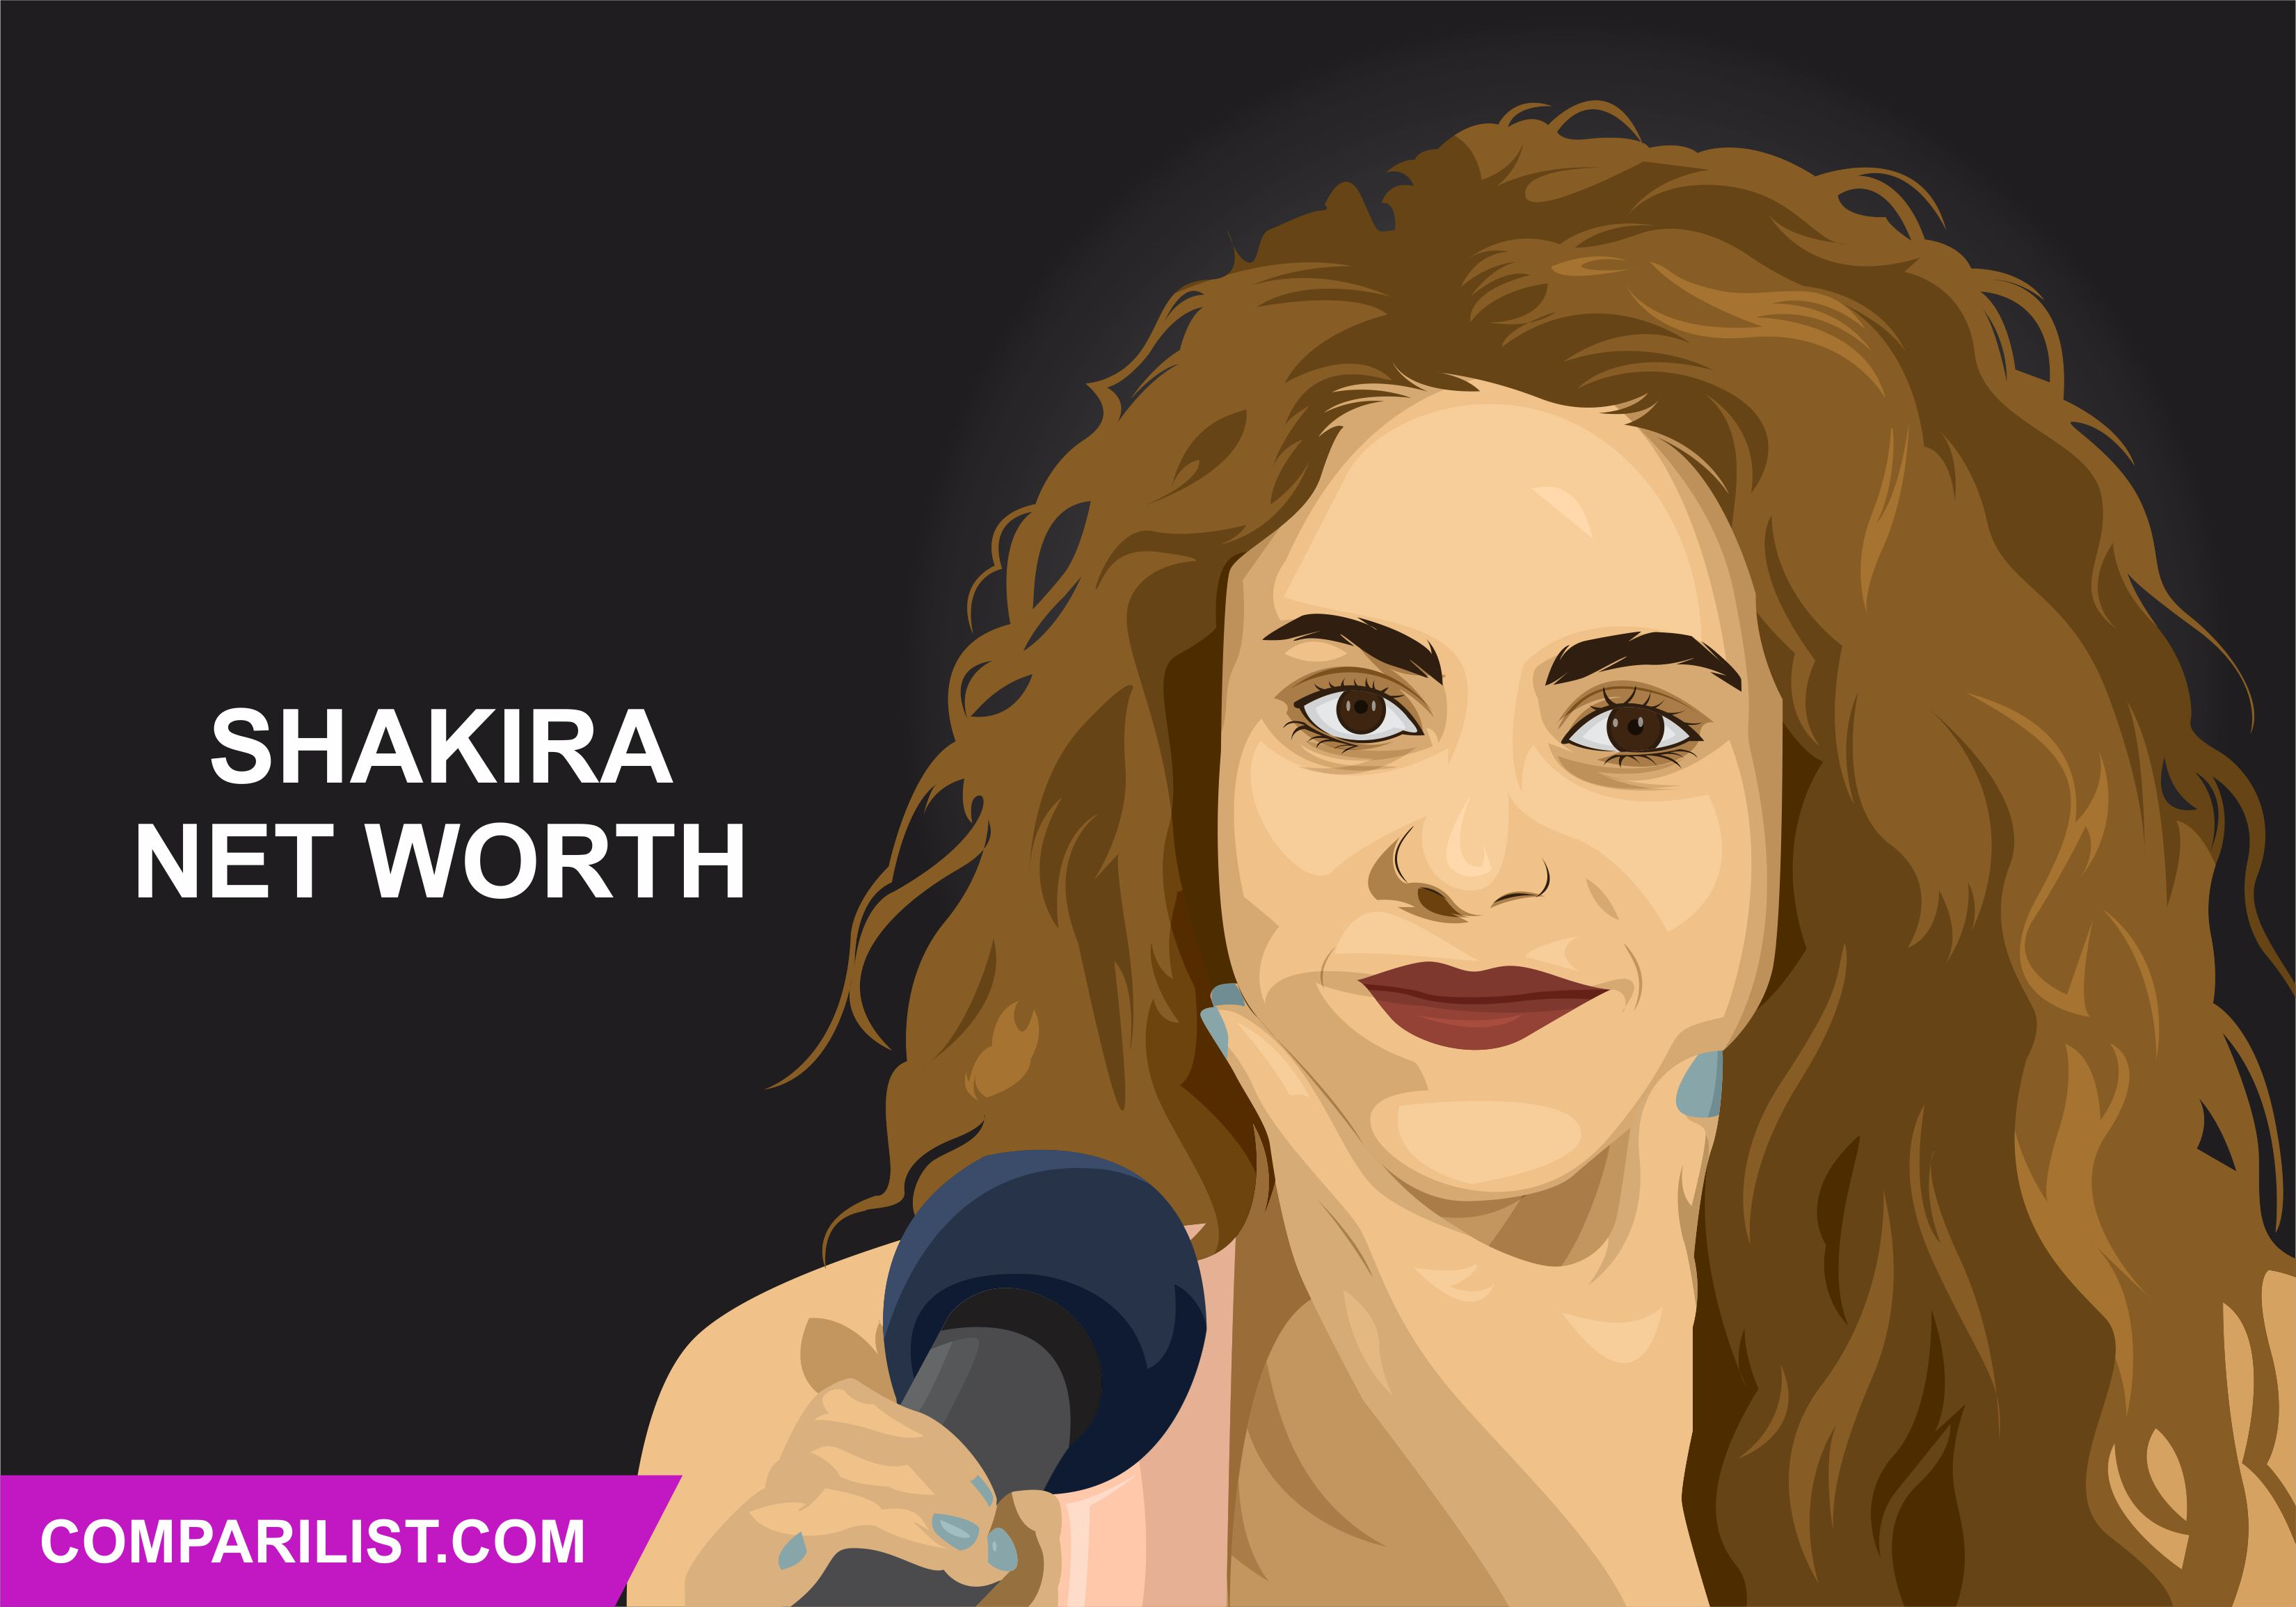 Shakira Net Worth 2019 Sources Of Income Salary And More